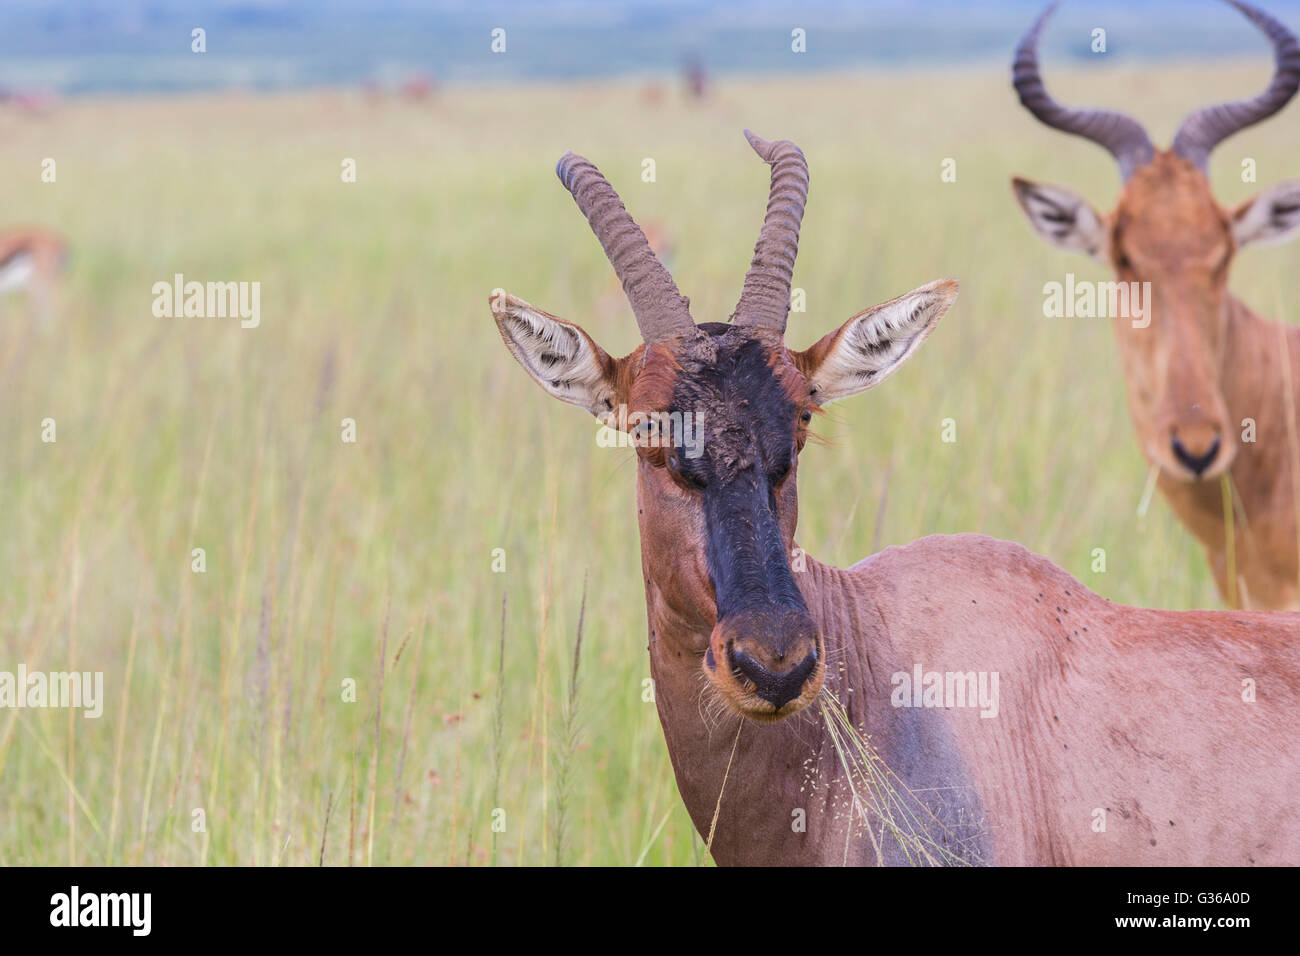 Portrait of a Topi gazelle with grass in his mouth, Masai Mara, Kenya, Africa - Stock Image